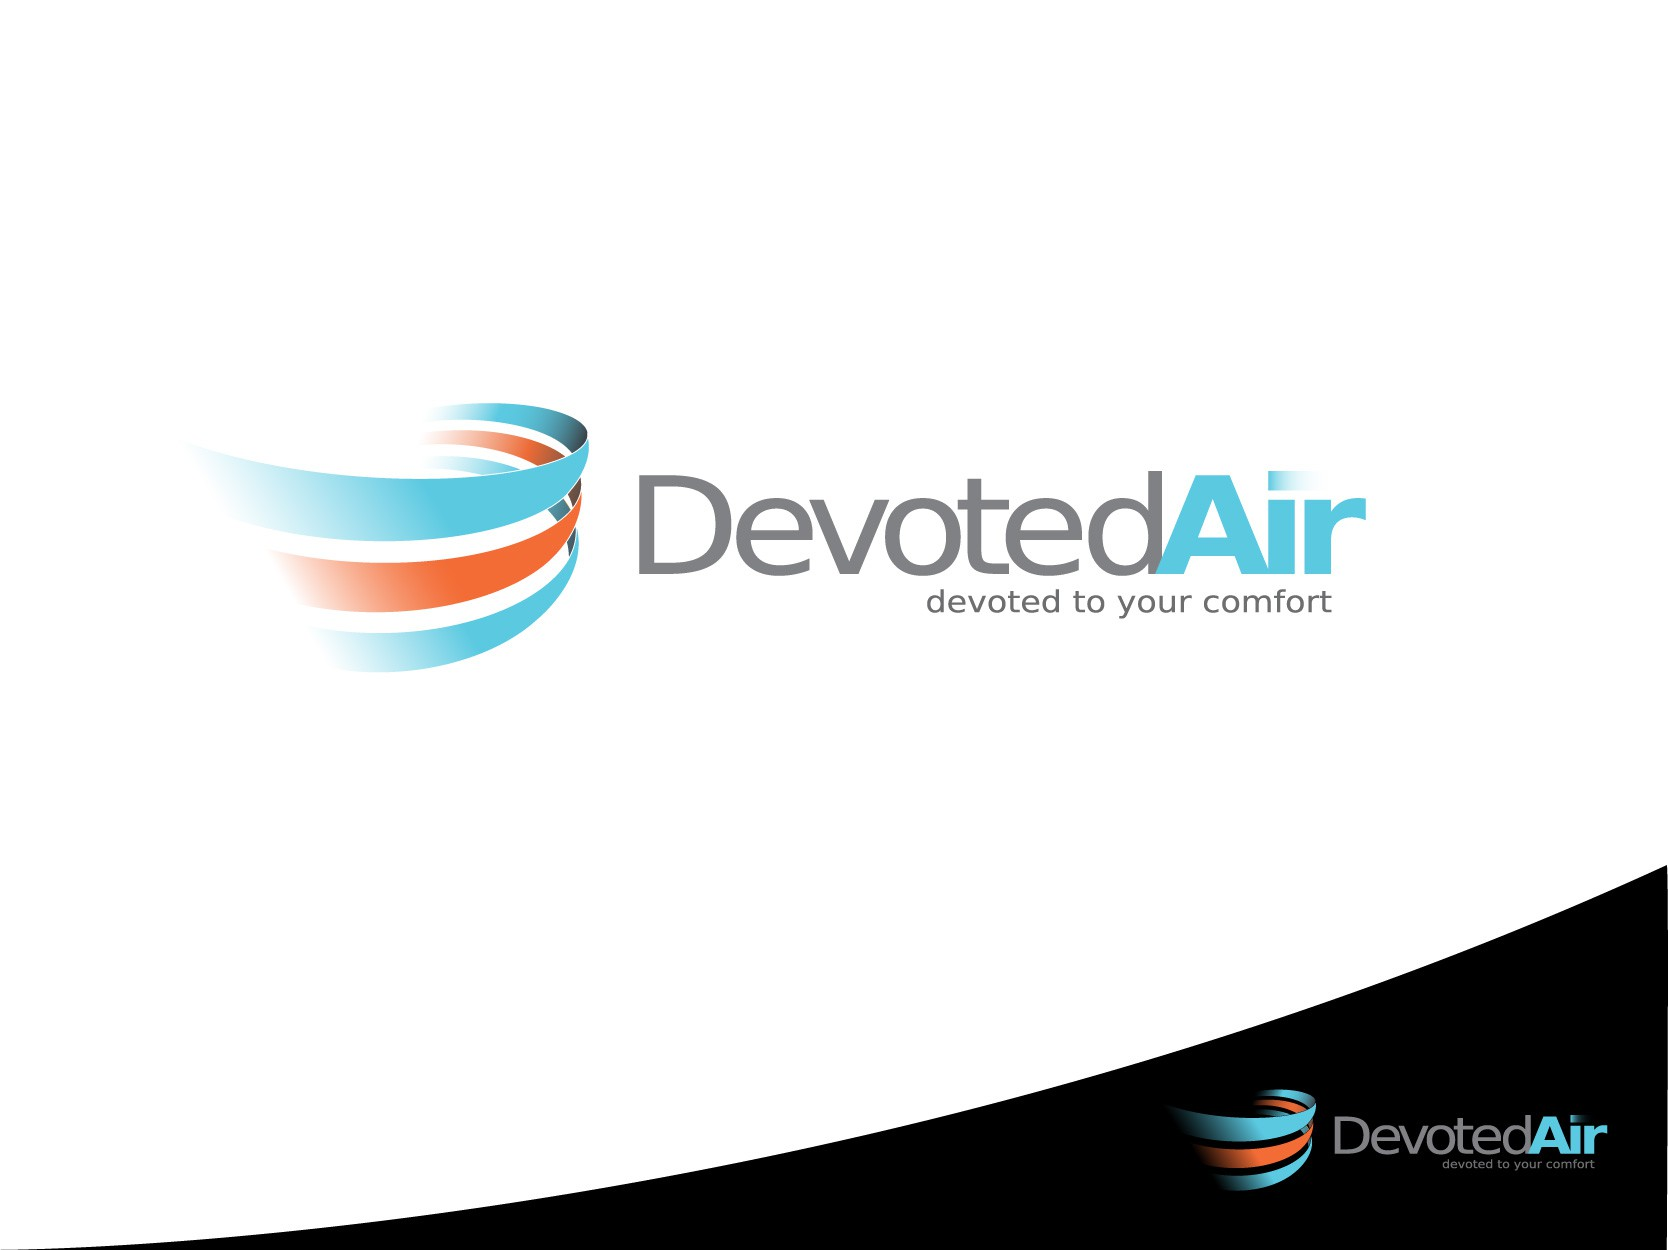 Devoted Air needs a new logo